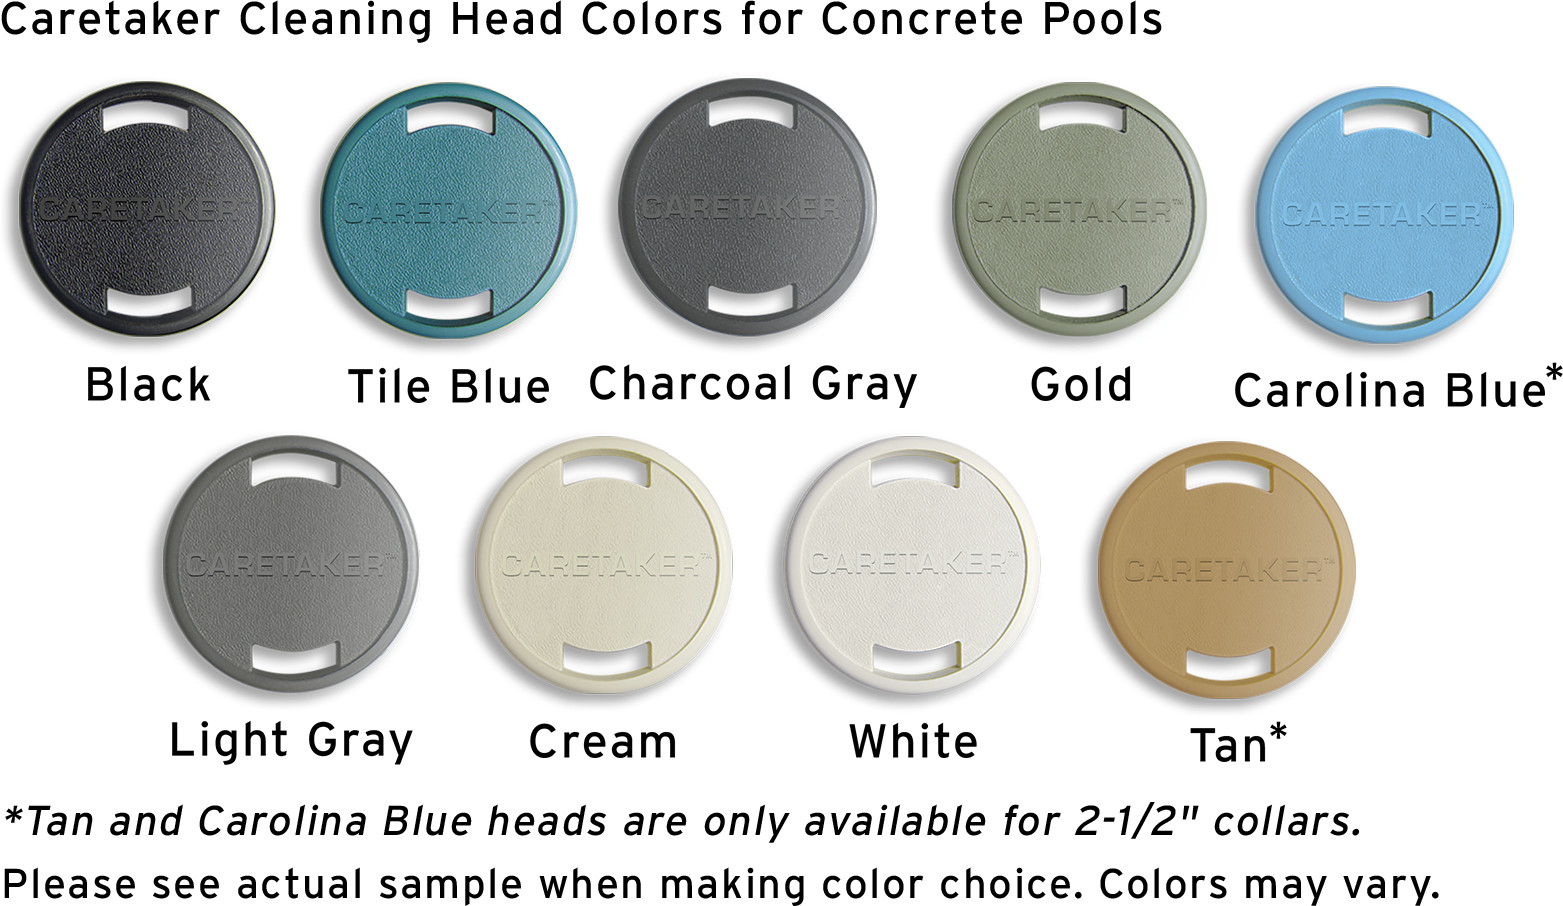 Caretaker Head Colors for Concreate Pools